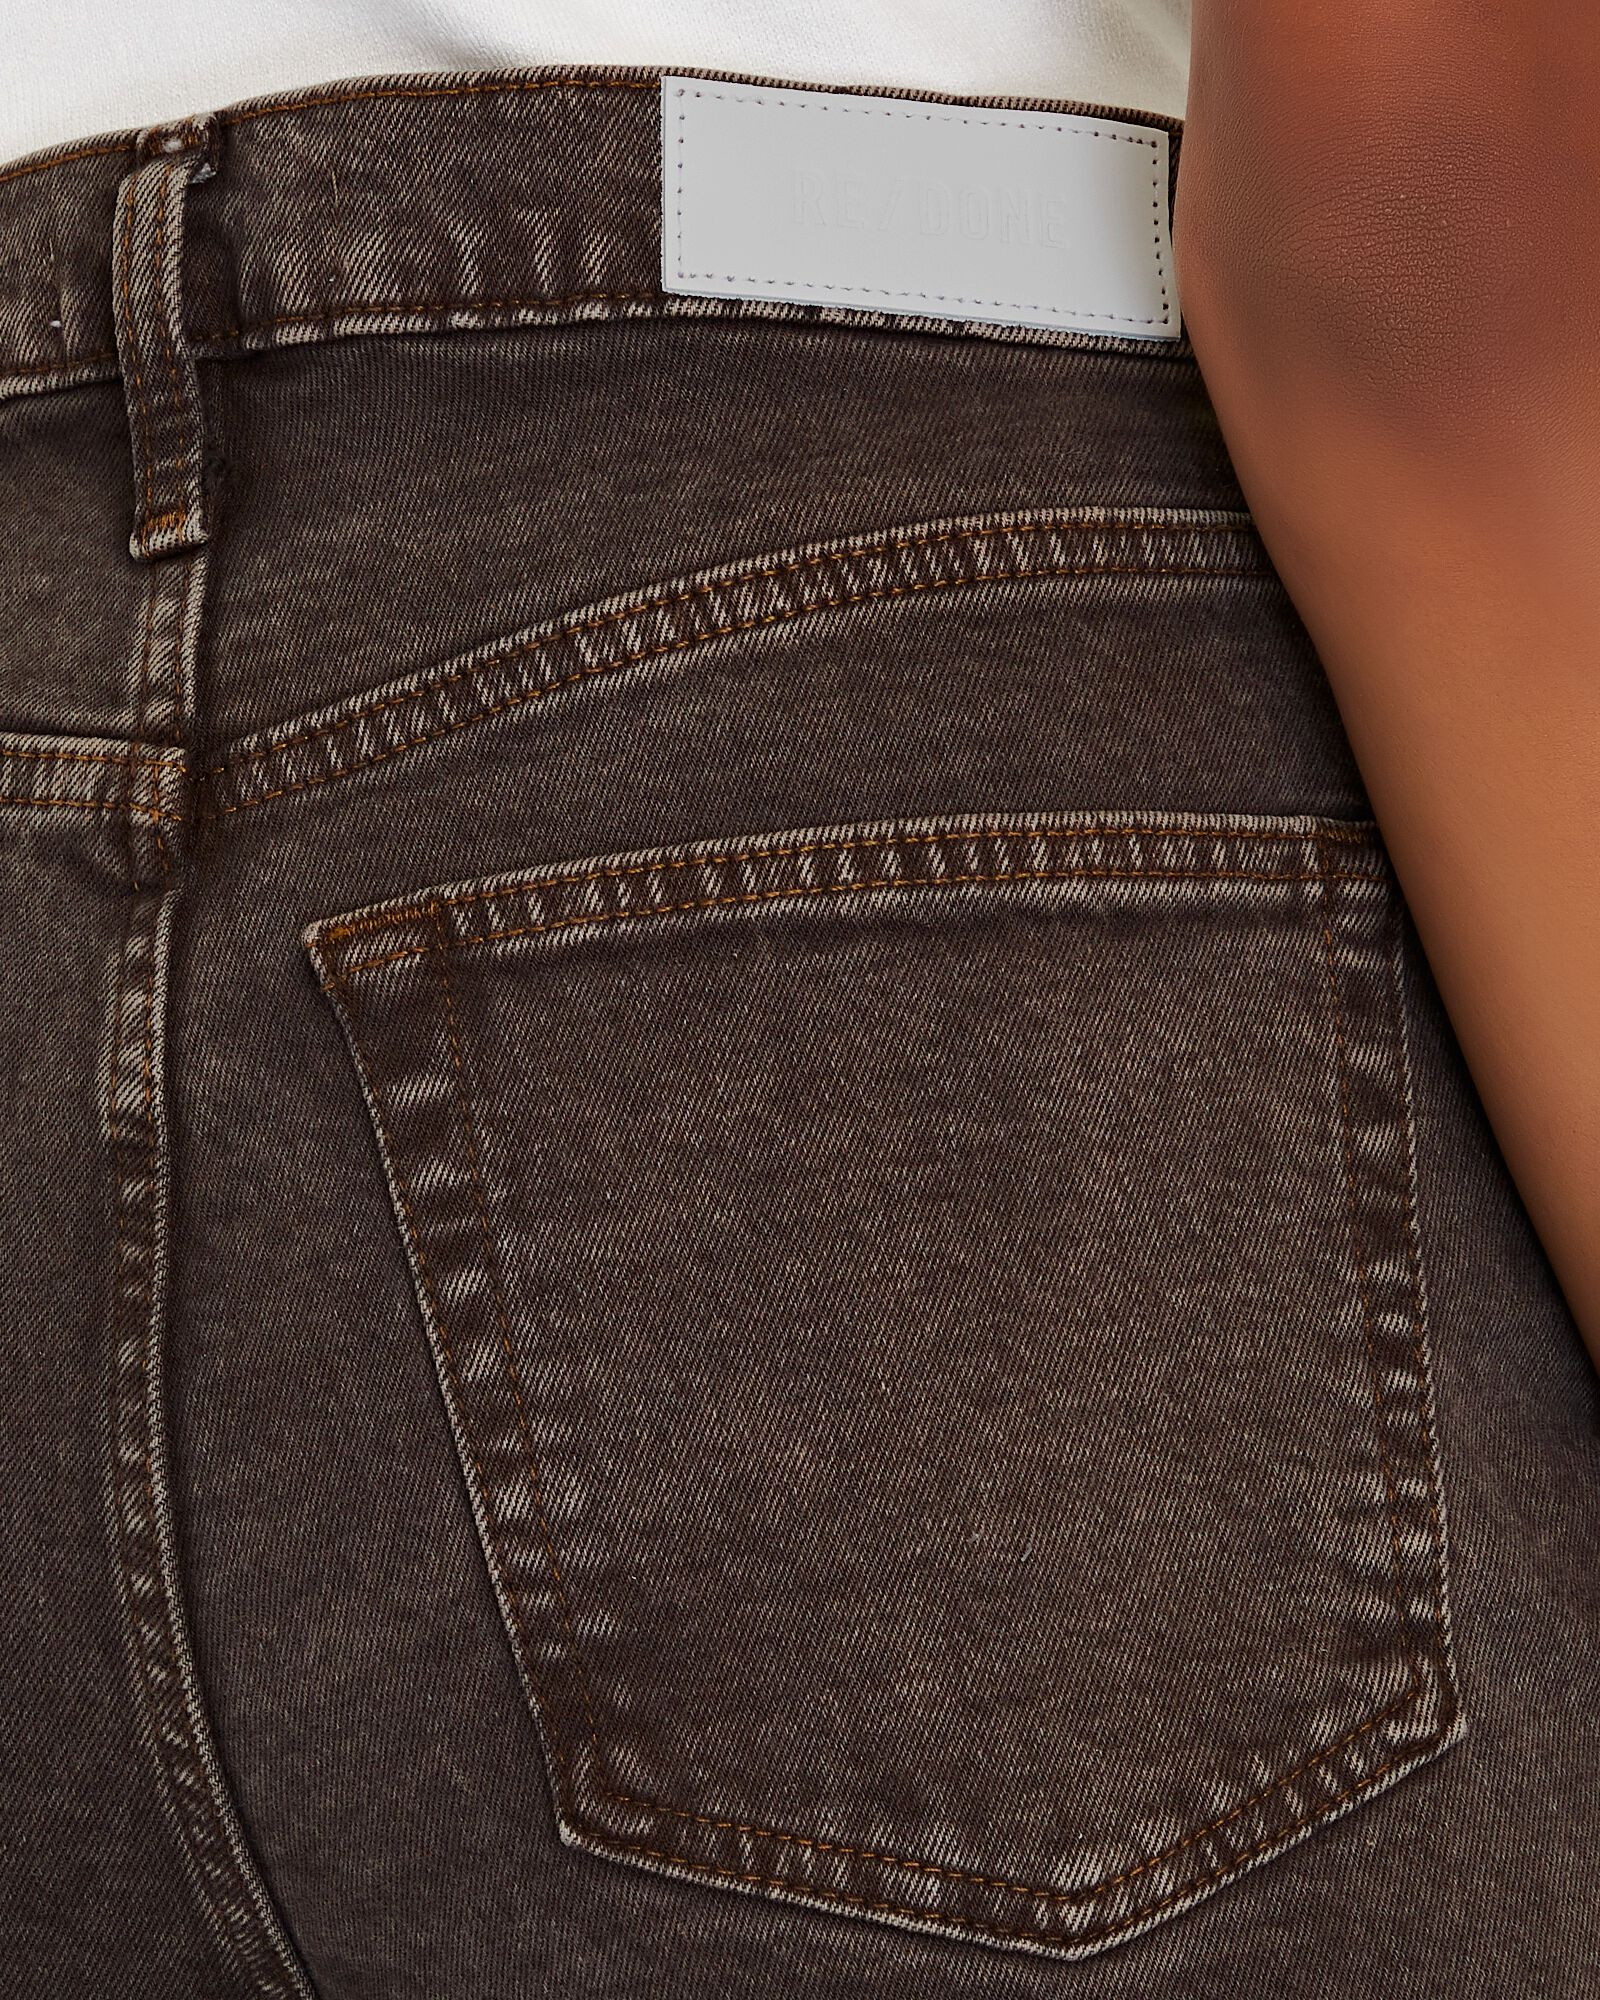 70s Ultra High-Rise Stove Pipe Jeans, WASHED CHOCOLATE, hi-res